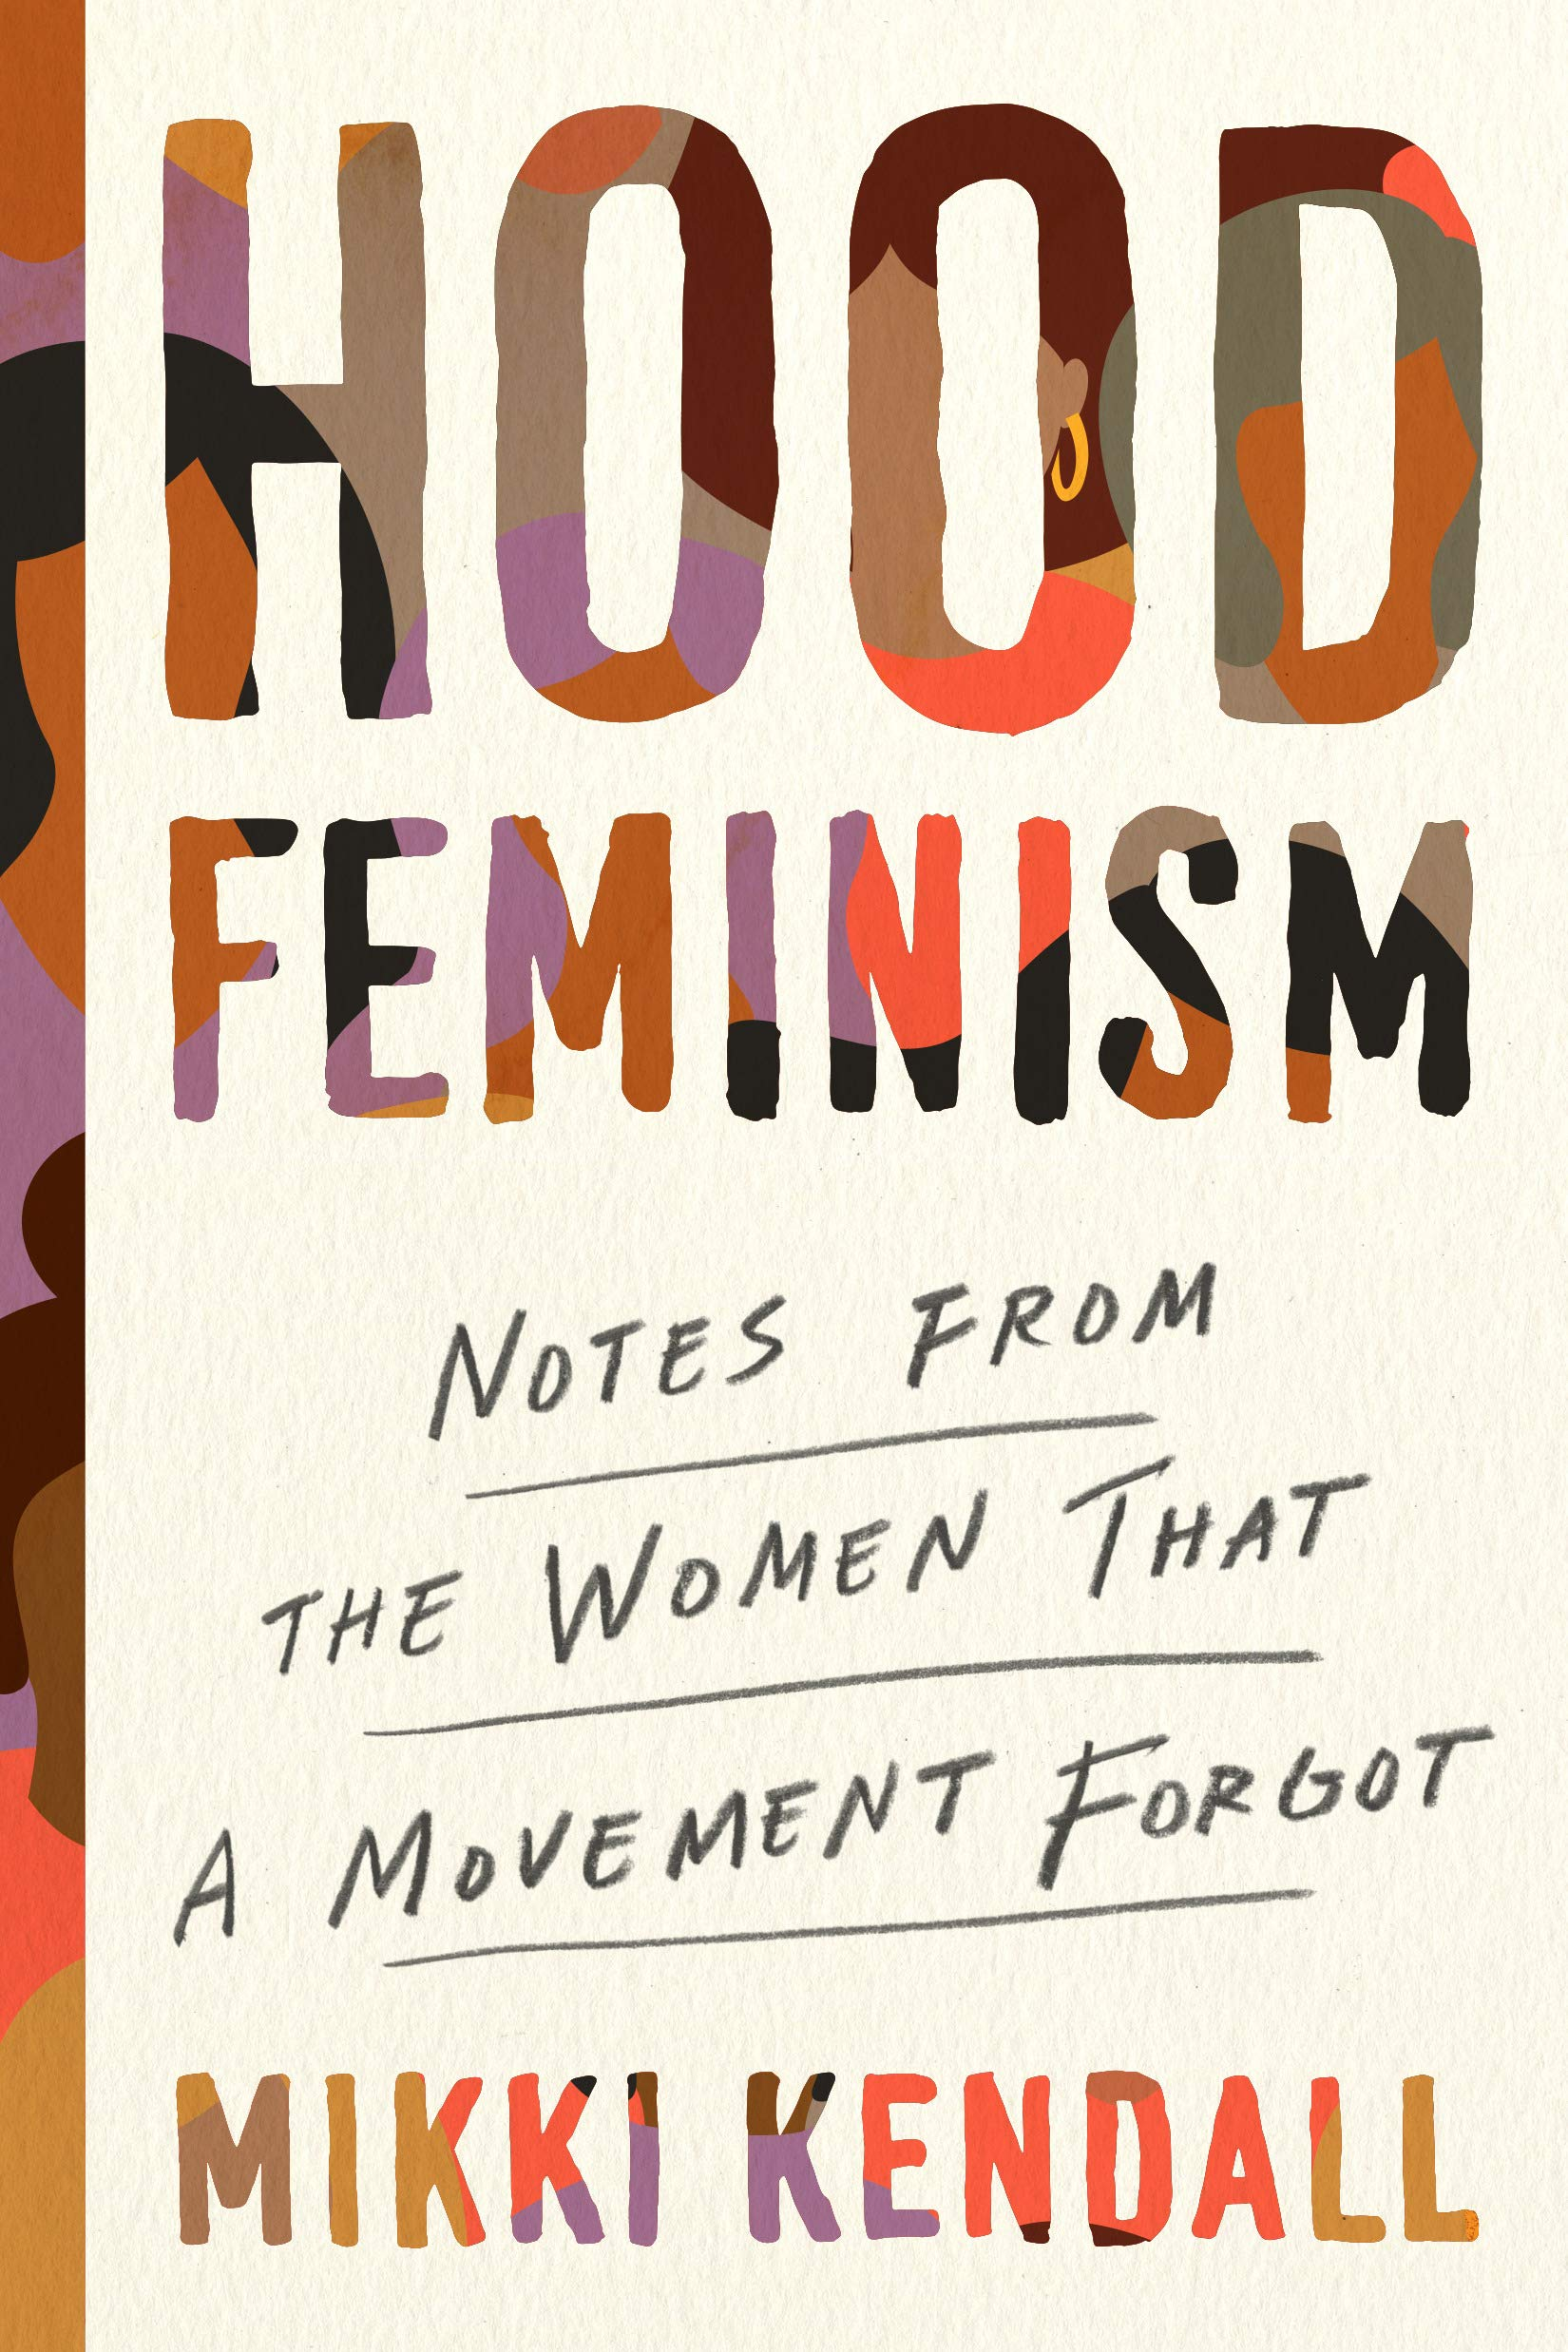 Hood Feminism: Notes from the Women That a Movement Forgot ...